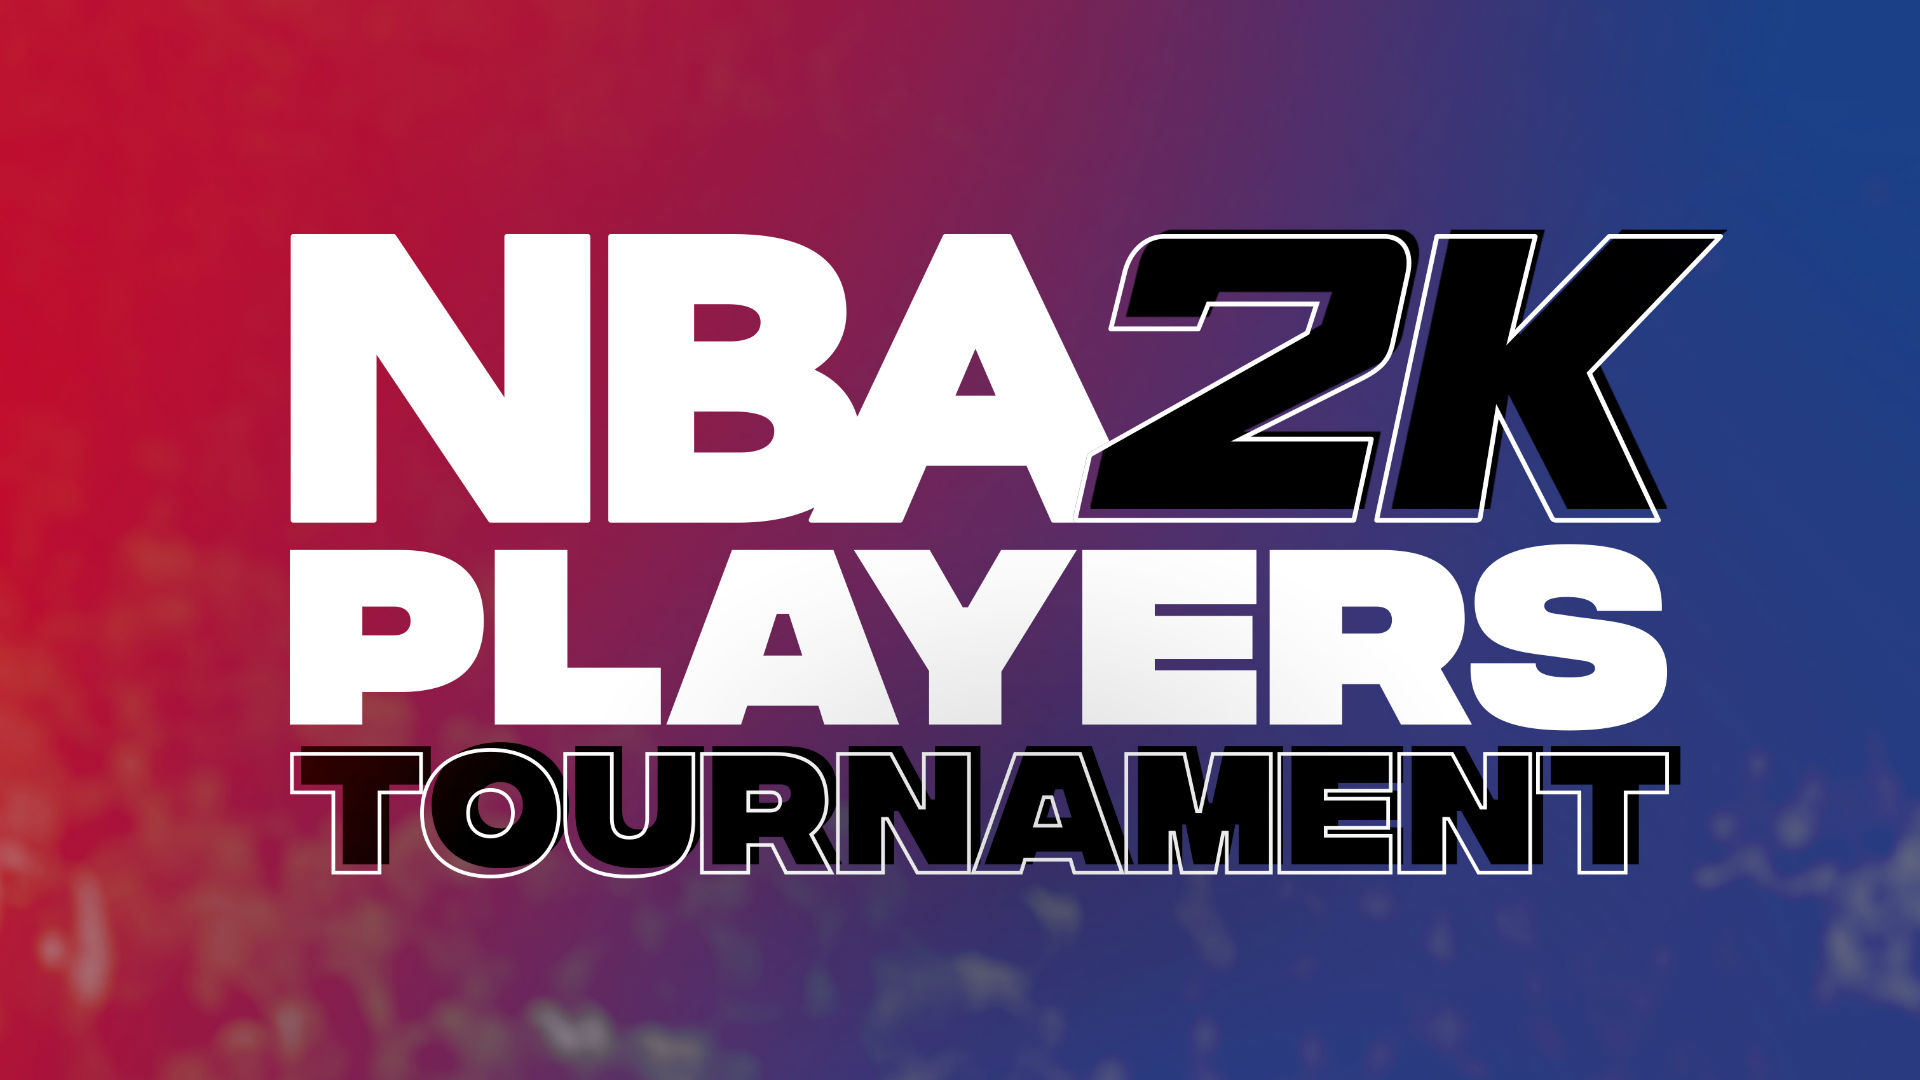 'NBA 2K' Players Tournament 2020: calendario completo de TV, soporte y lista de entradas para juegos en ESPN 18